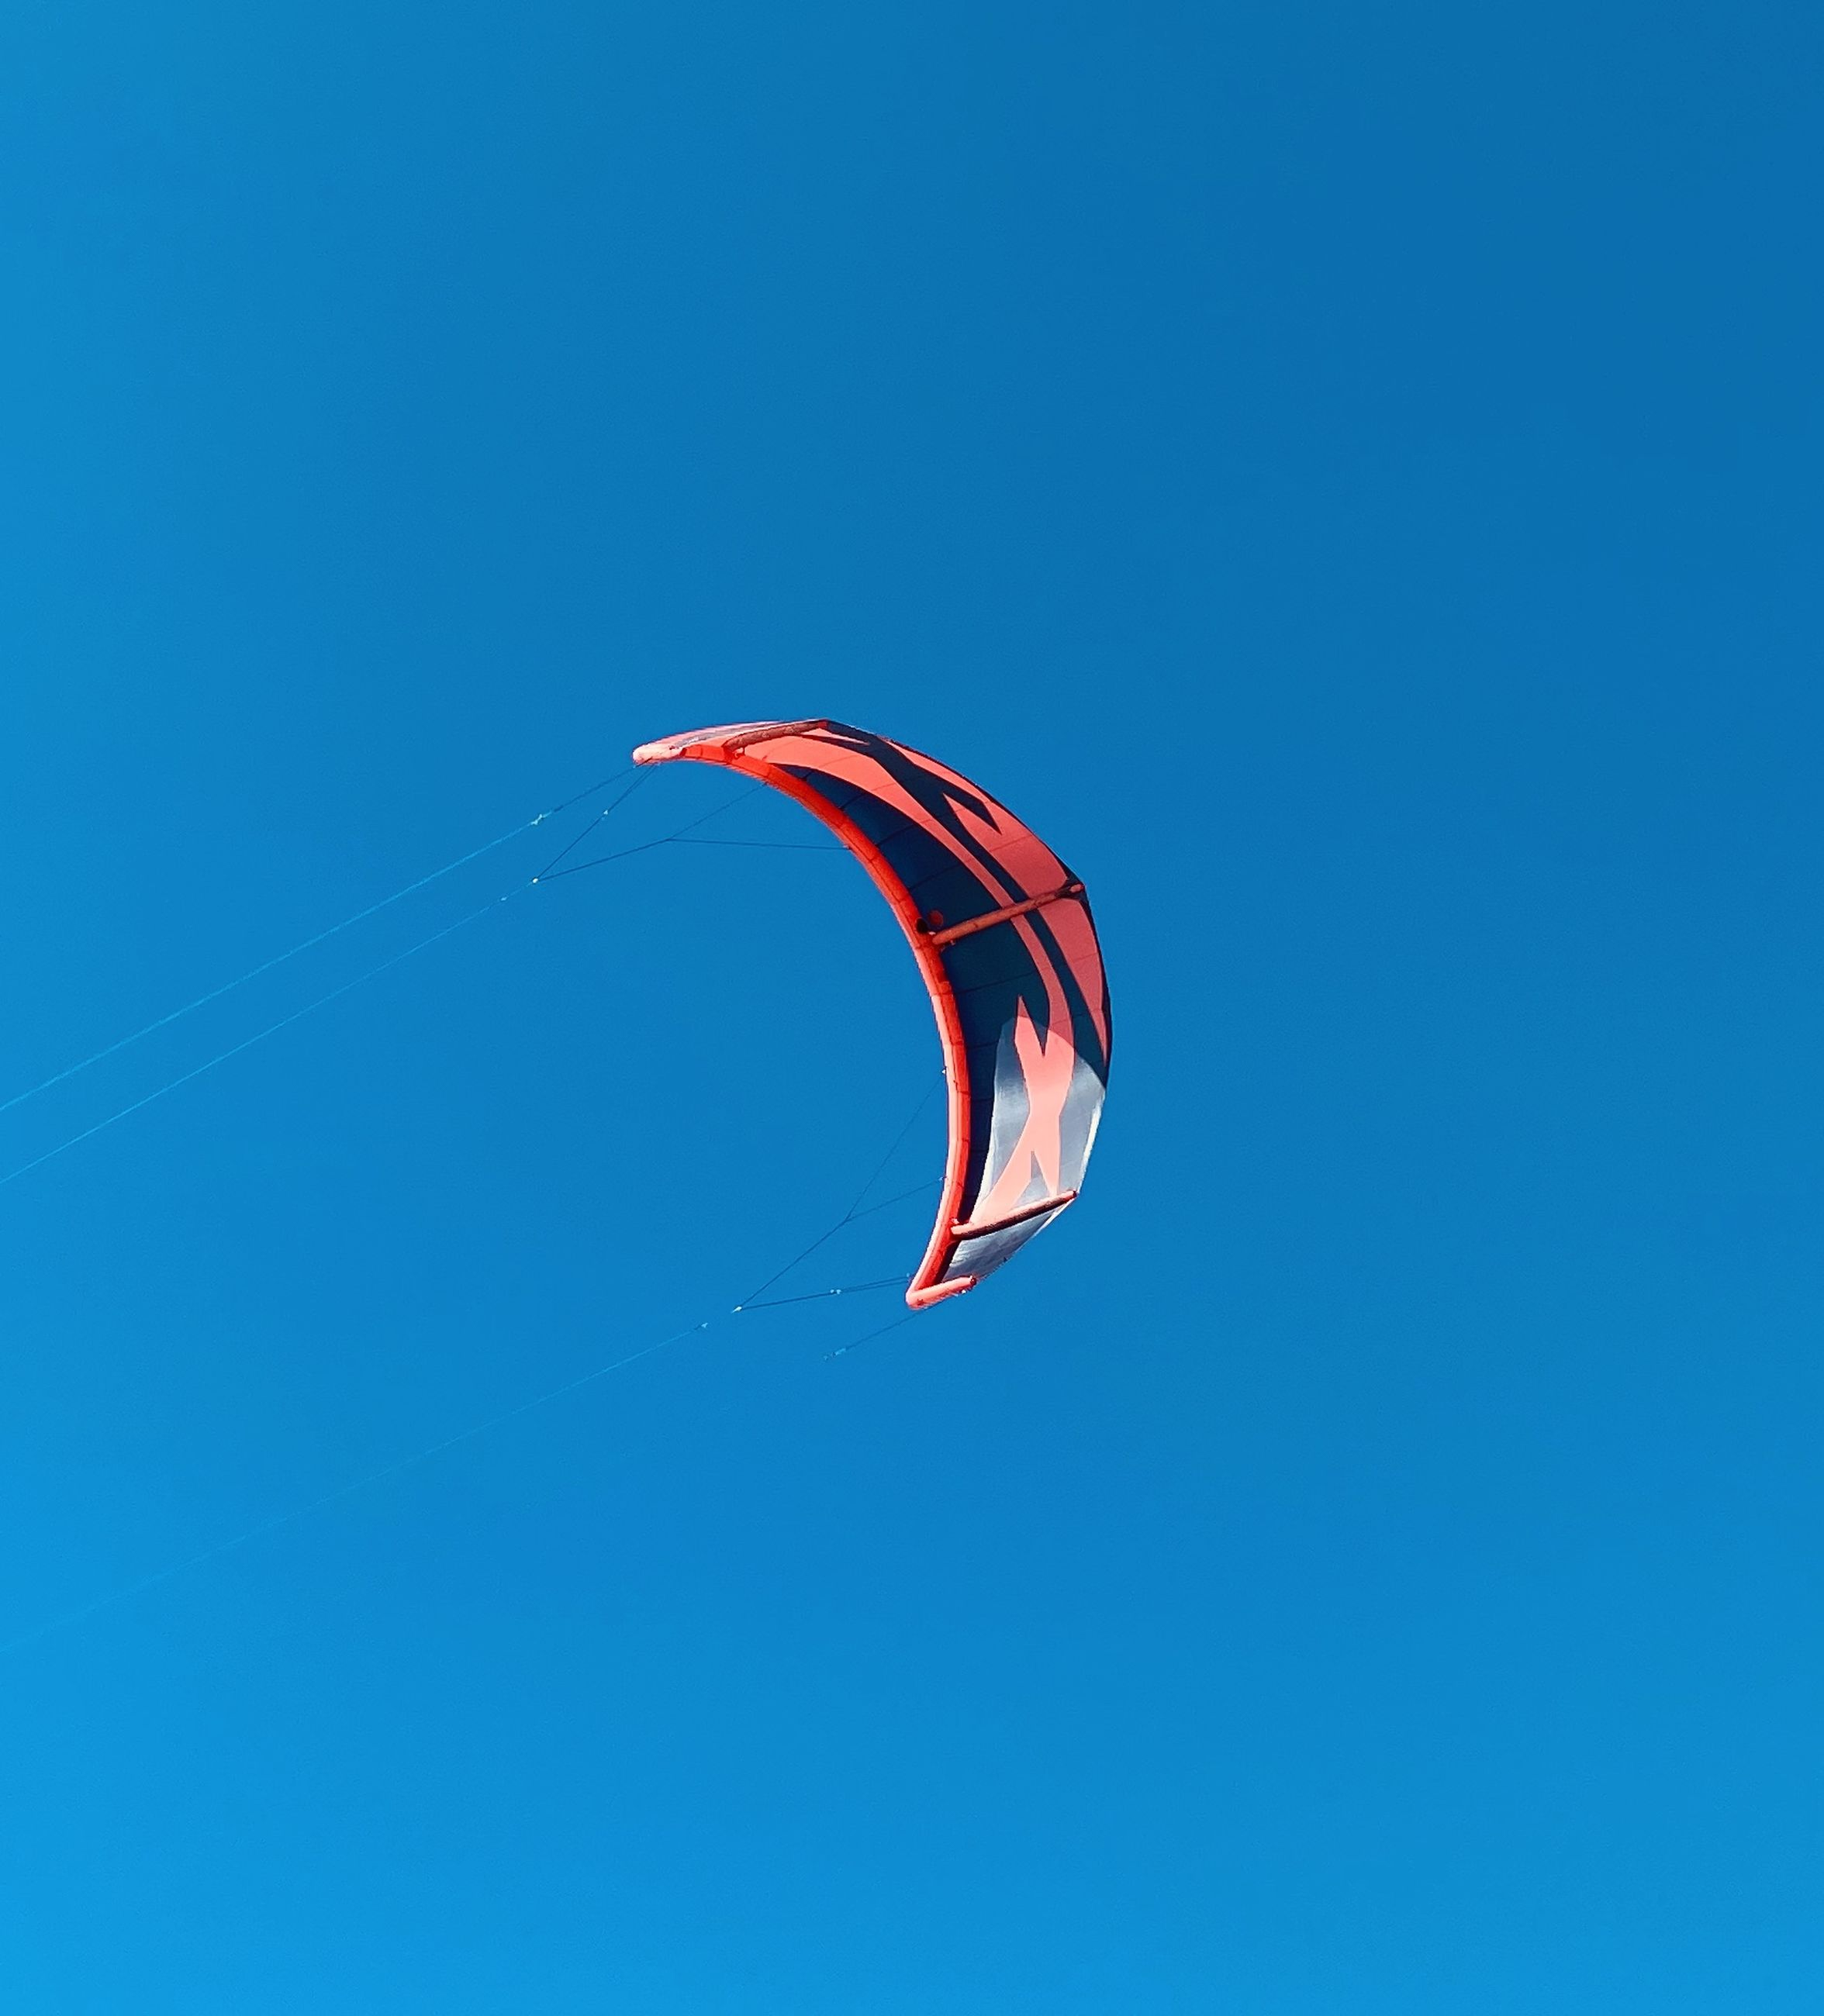 blue, windsports, sports, sky, flying, clear sky, mid-air, toy, nature, low angle view, paragliding, parachute, extreme sports, adventure, leisure activity, copy space, day, kite sports, joy, motion, sunny, sport kite, environment, outdoors, kite - toy, wind, transportation, gliding, multi colored, no people, exhilaration